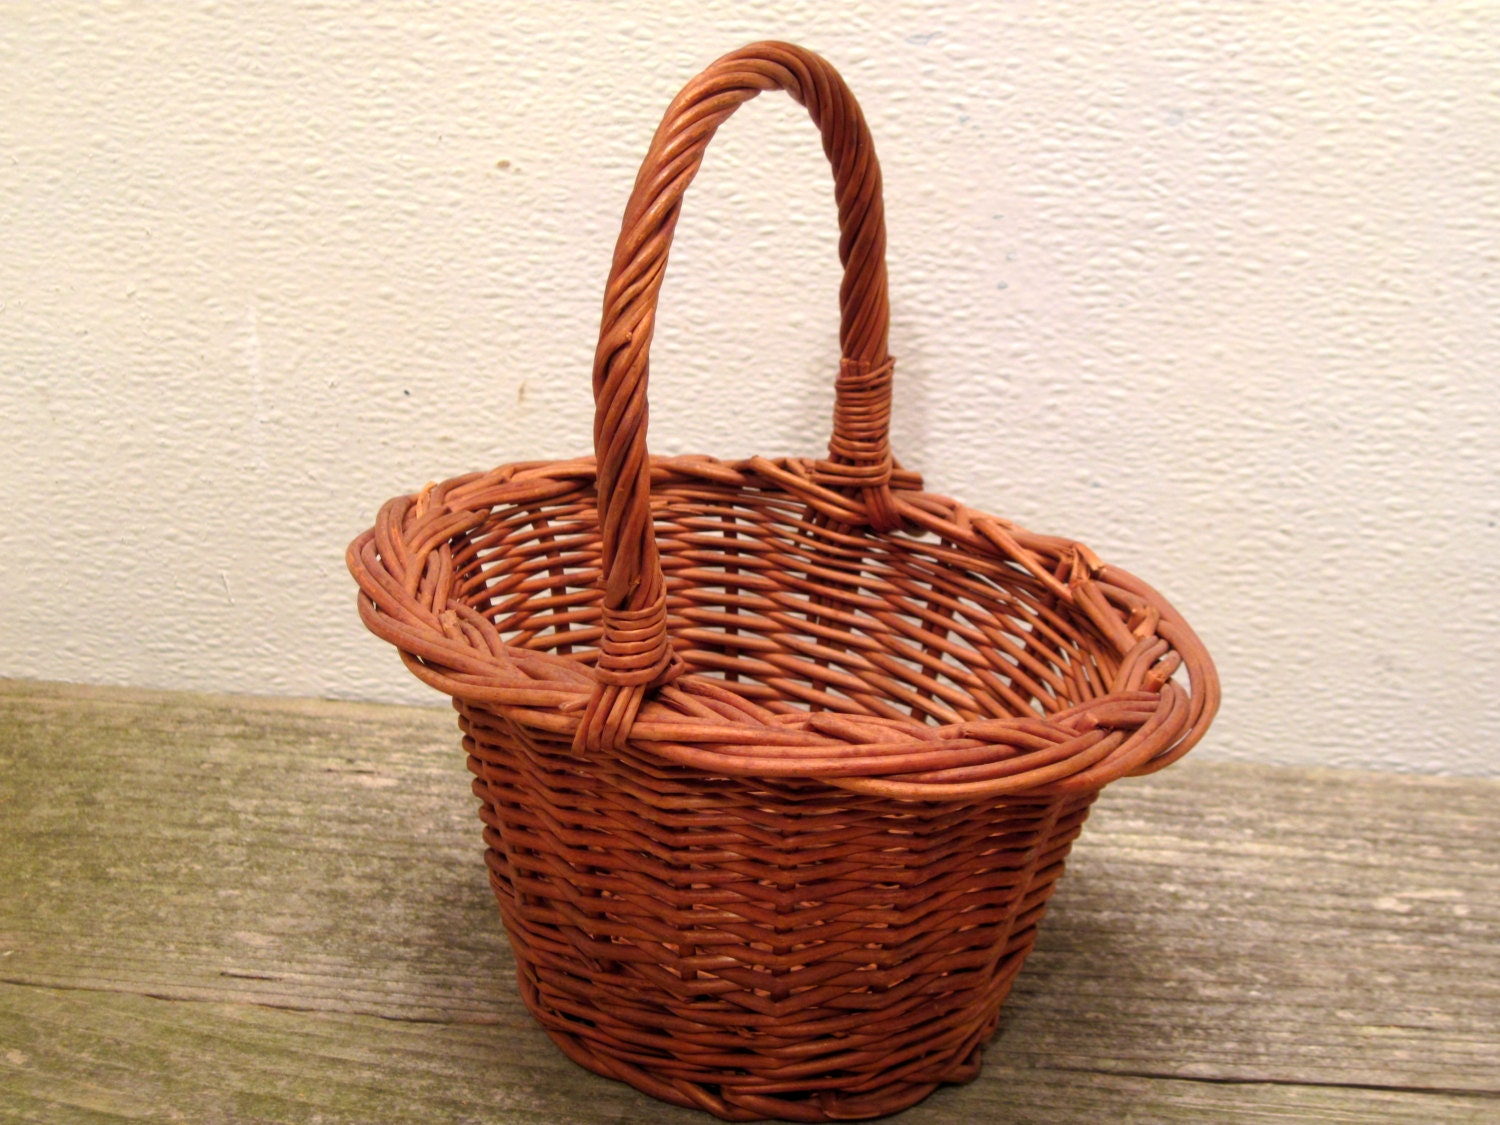 Tiny Wicker Basket With Handle : Small handle woven wicker basket bathroom decor desk